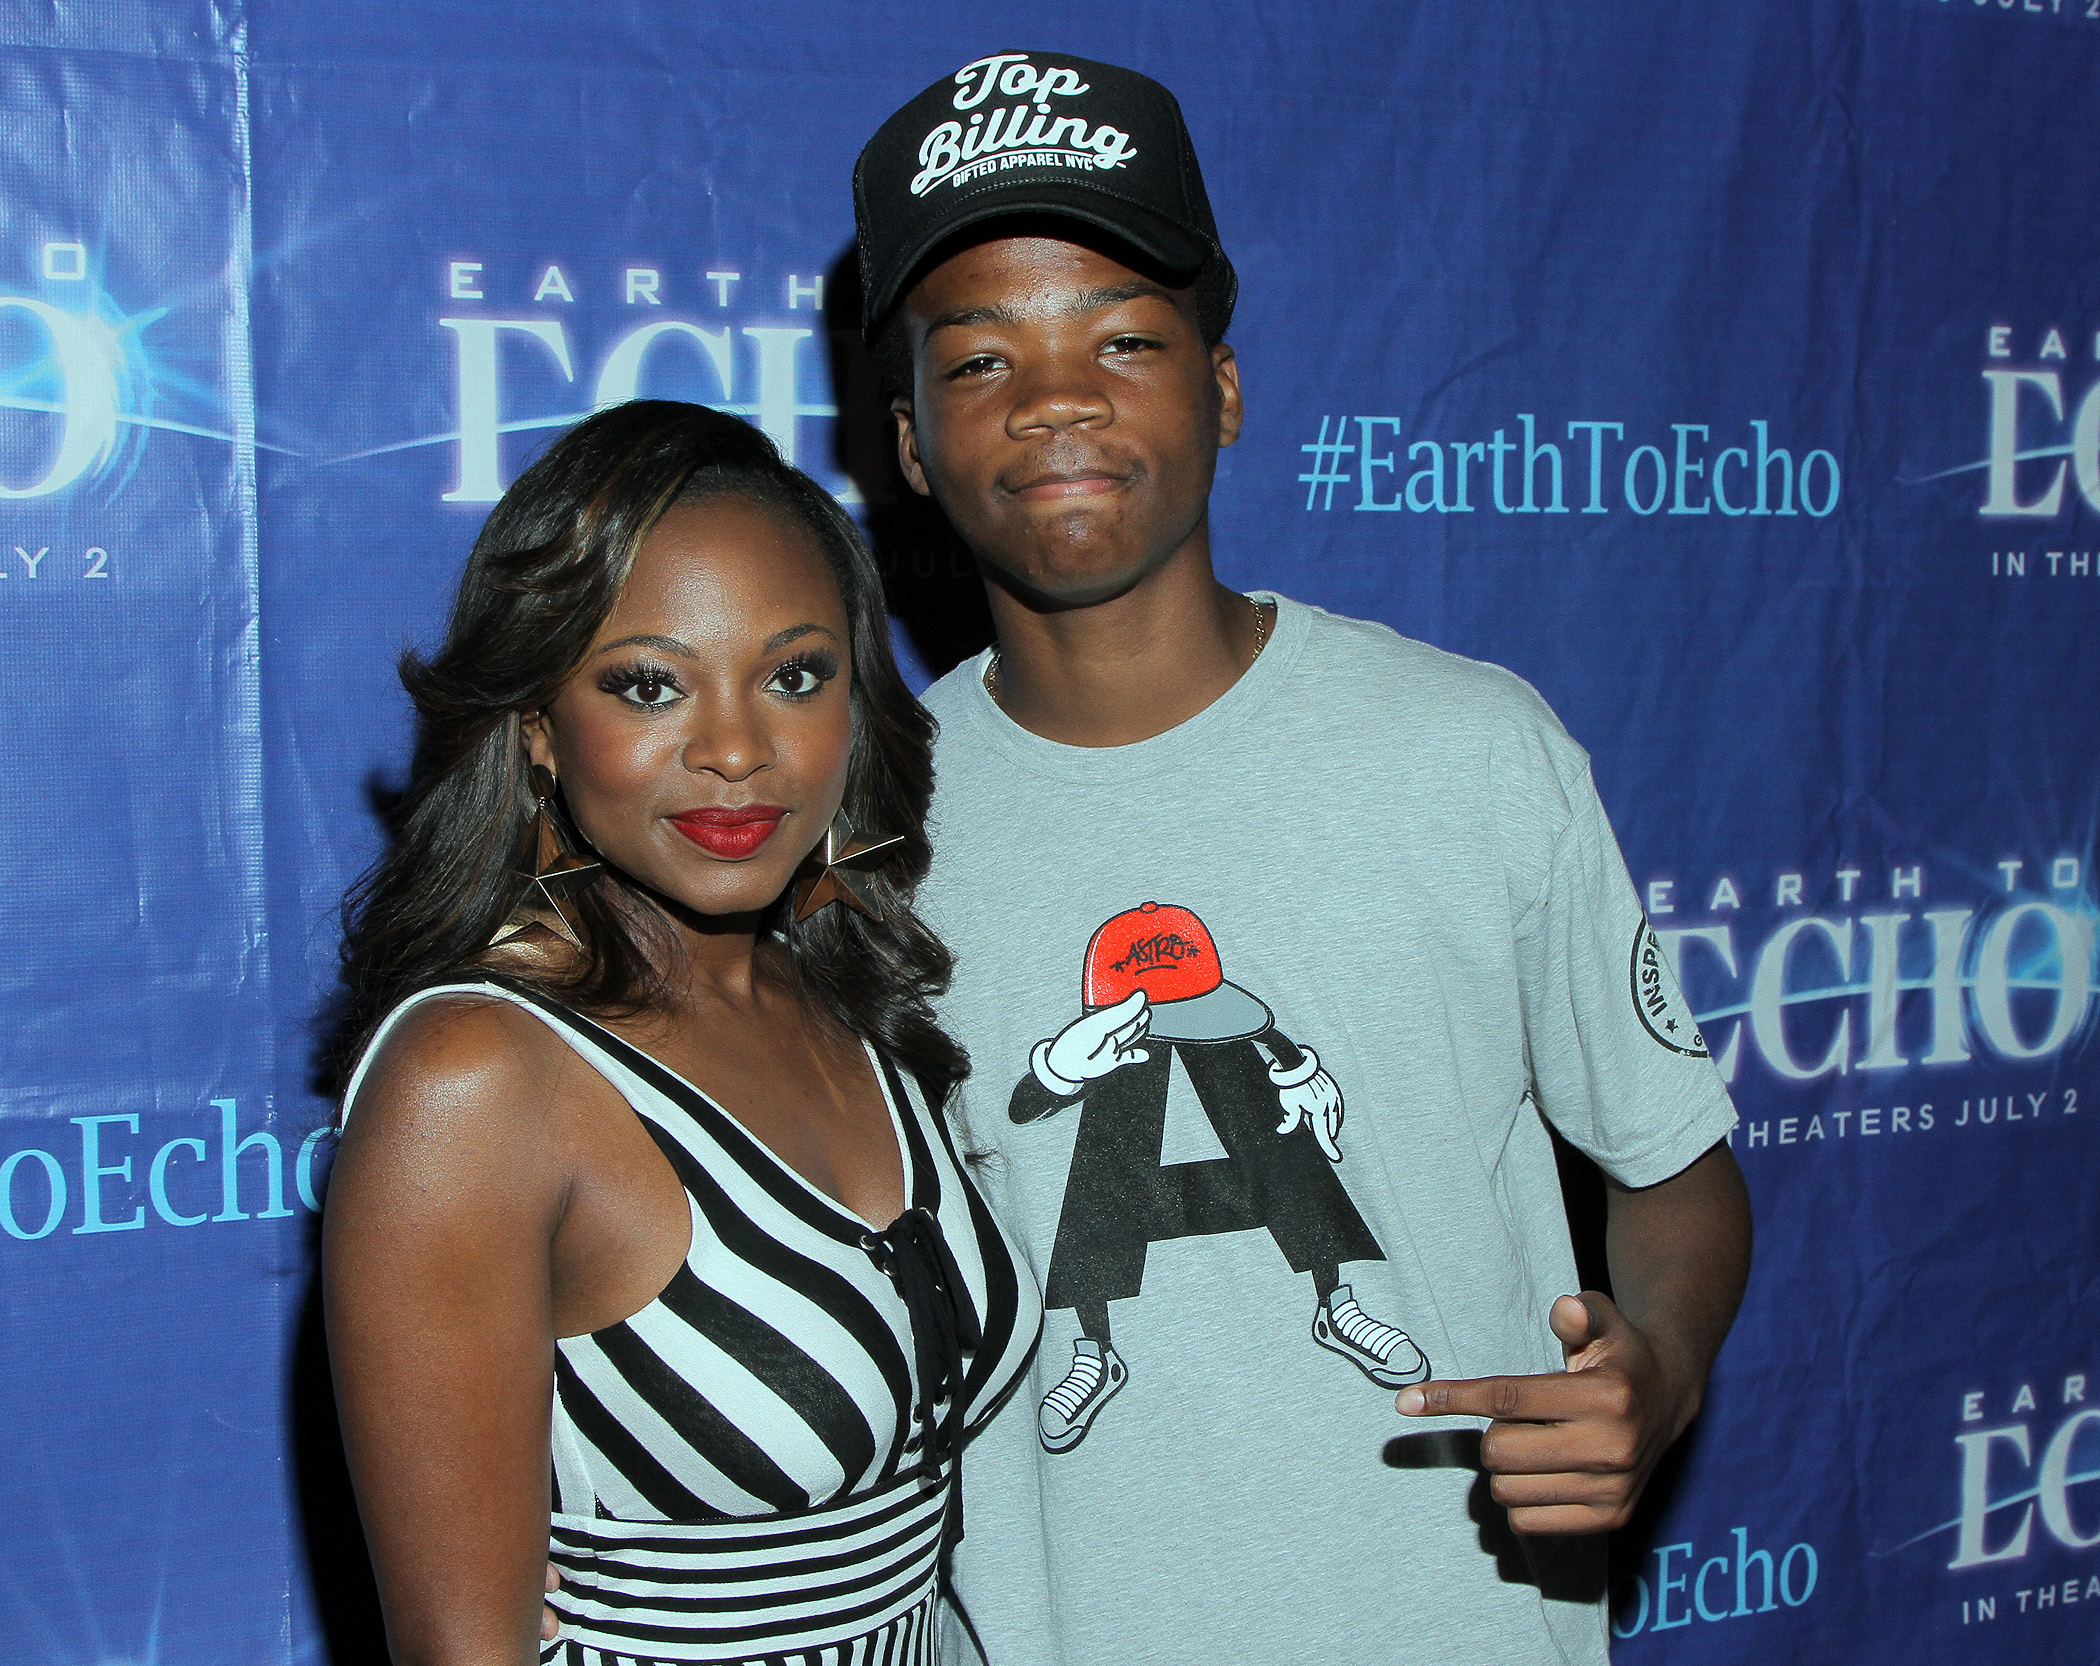 Earth To Echo VIP Sreening Hosted by Holly Robinson and HollyRod Foundation